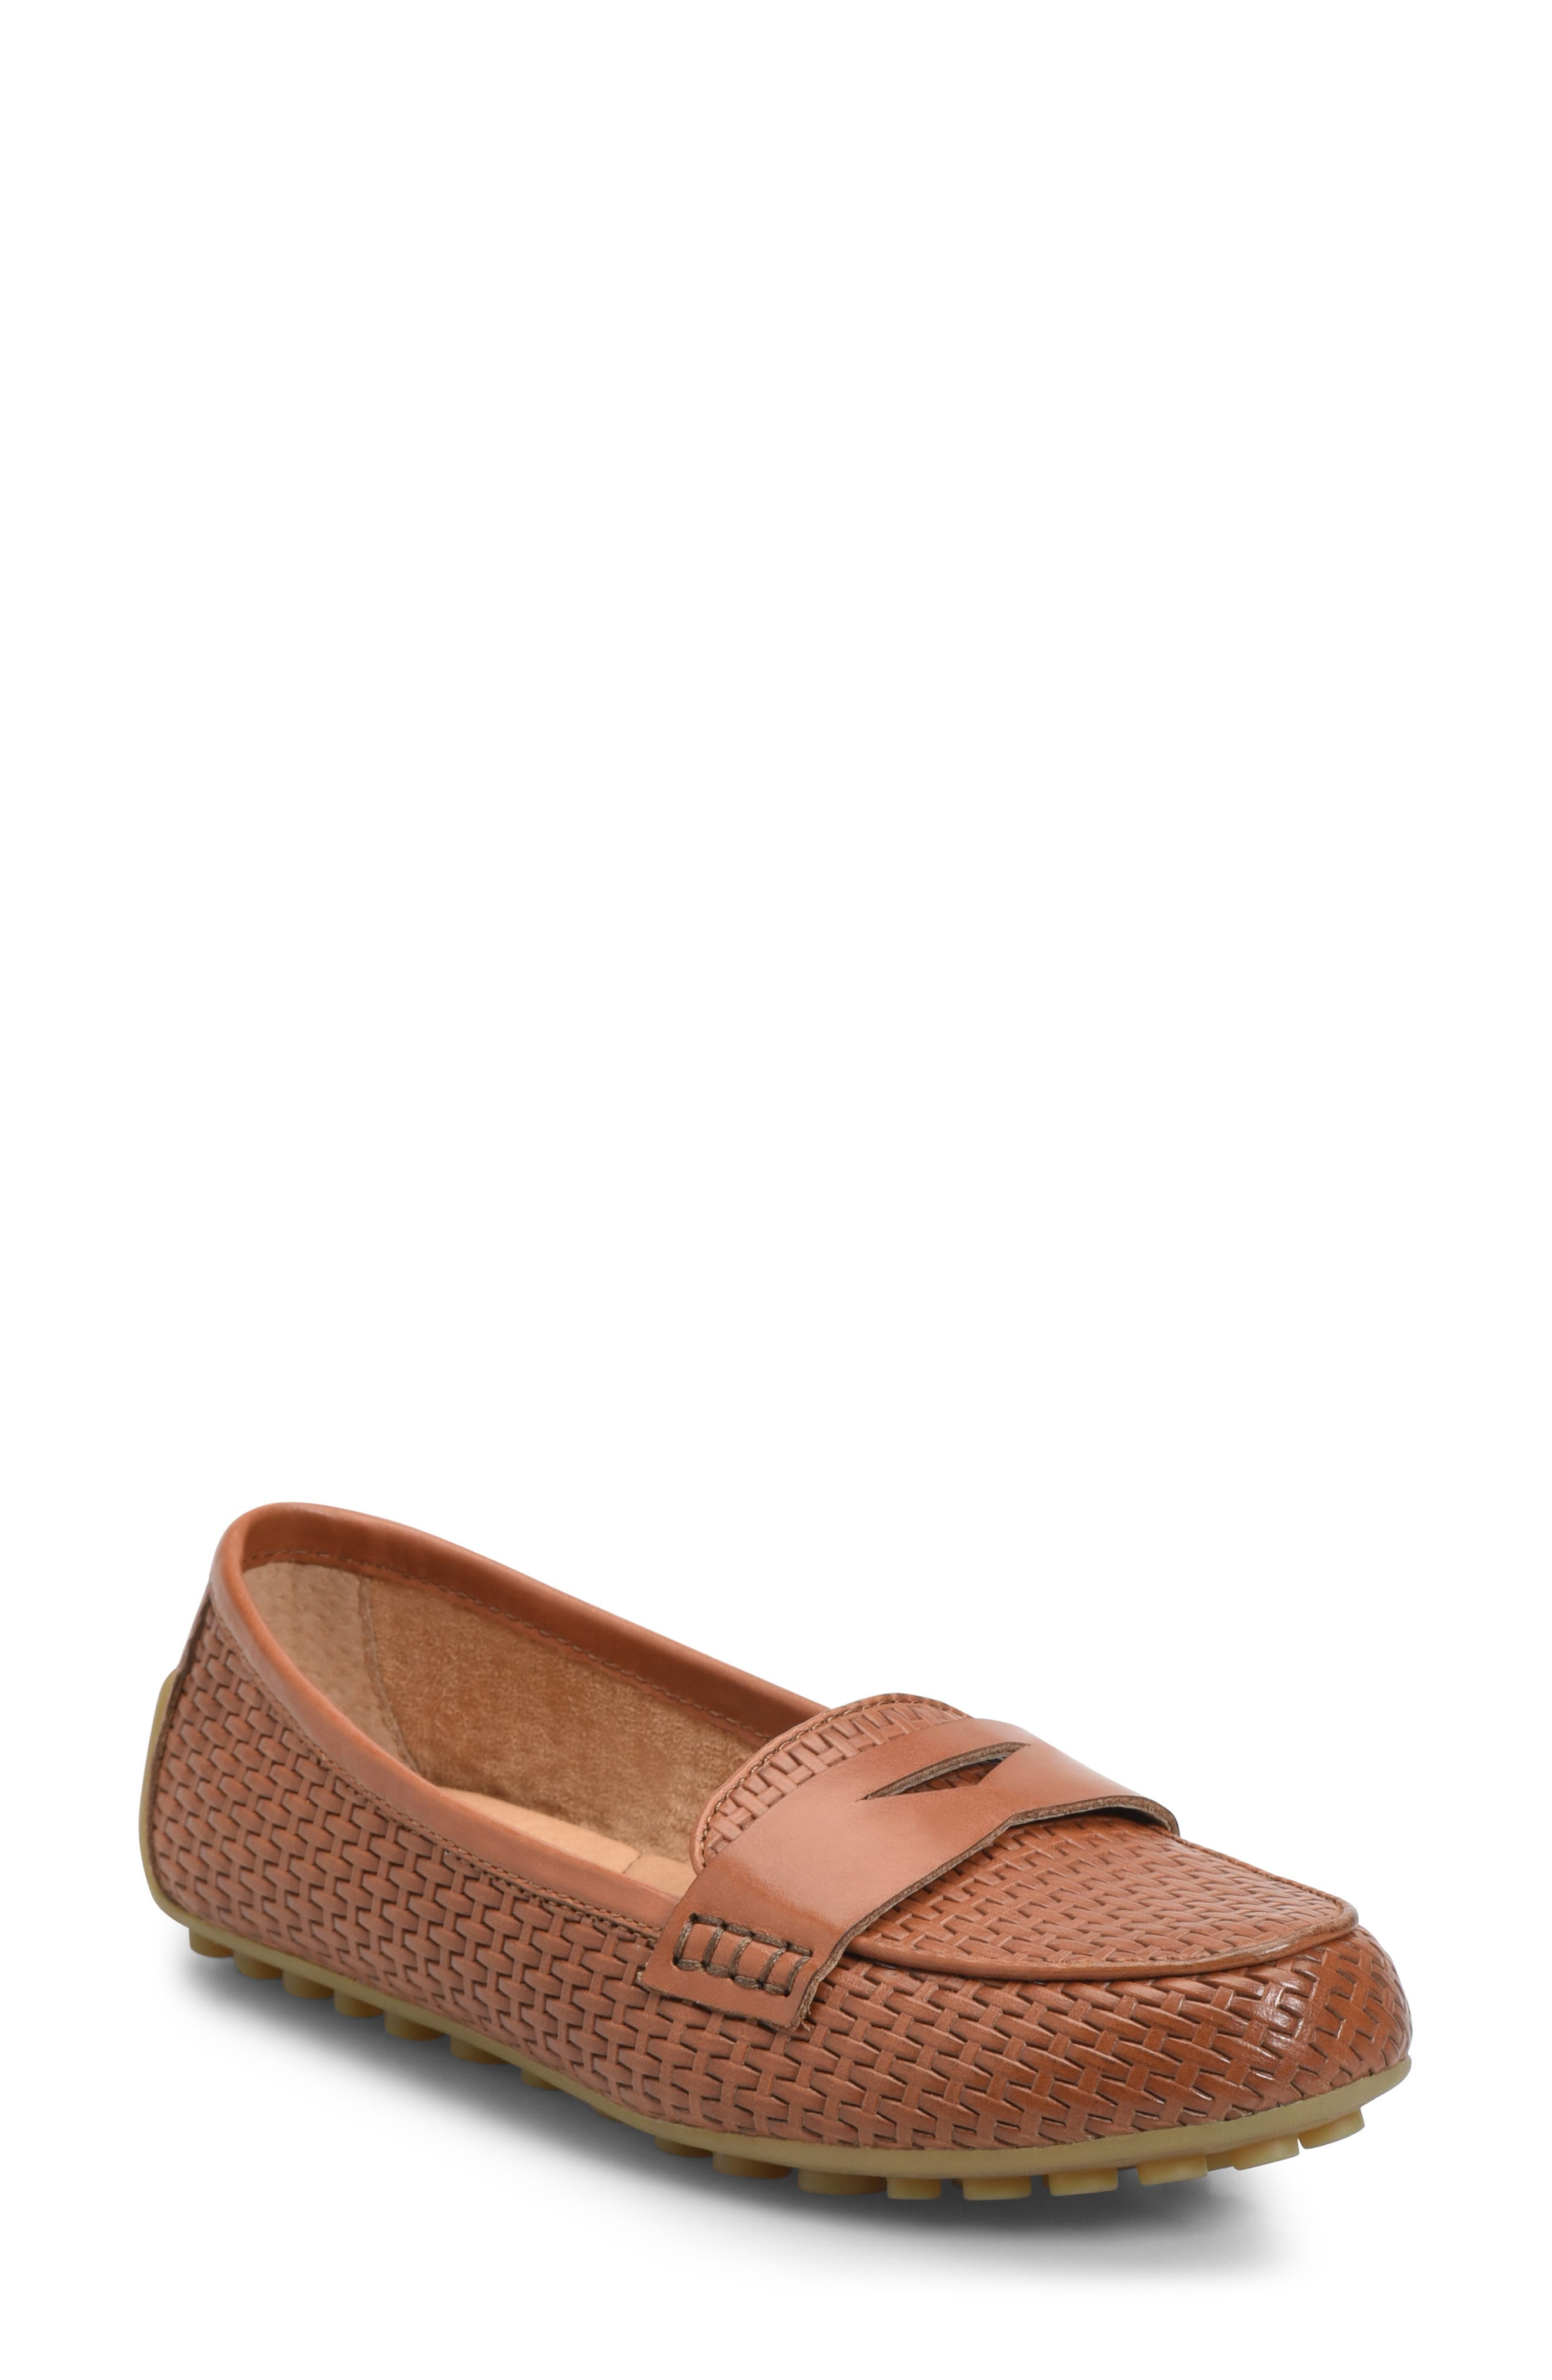 Malena Driving Loafer, Main, color, BROWN WEAVE EMBOSSED LEATHER